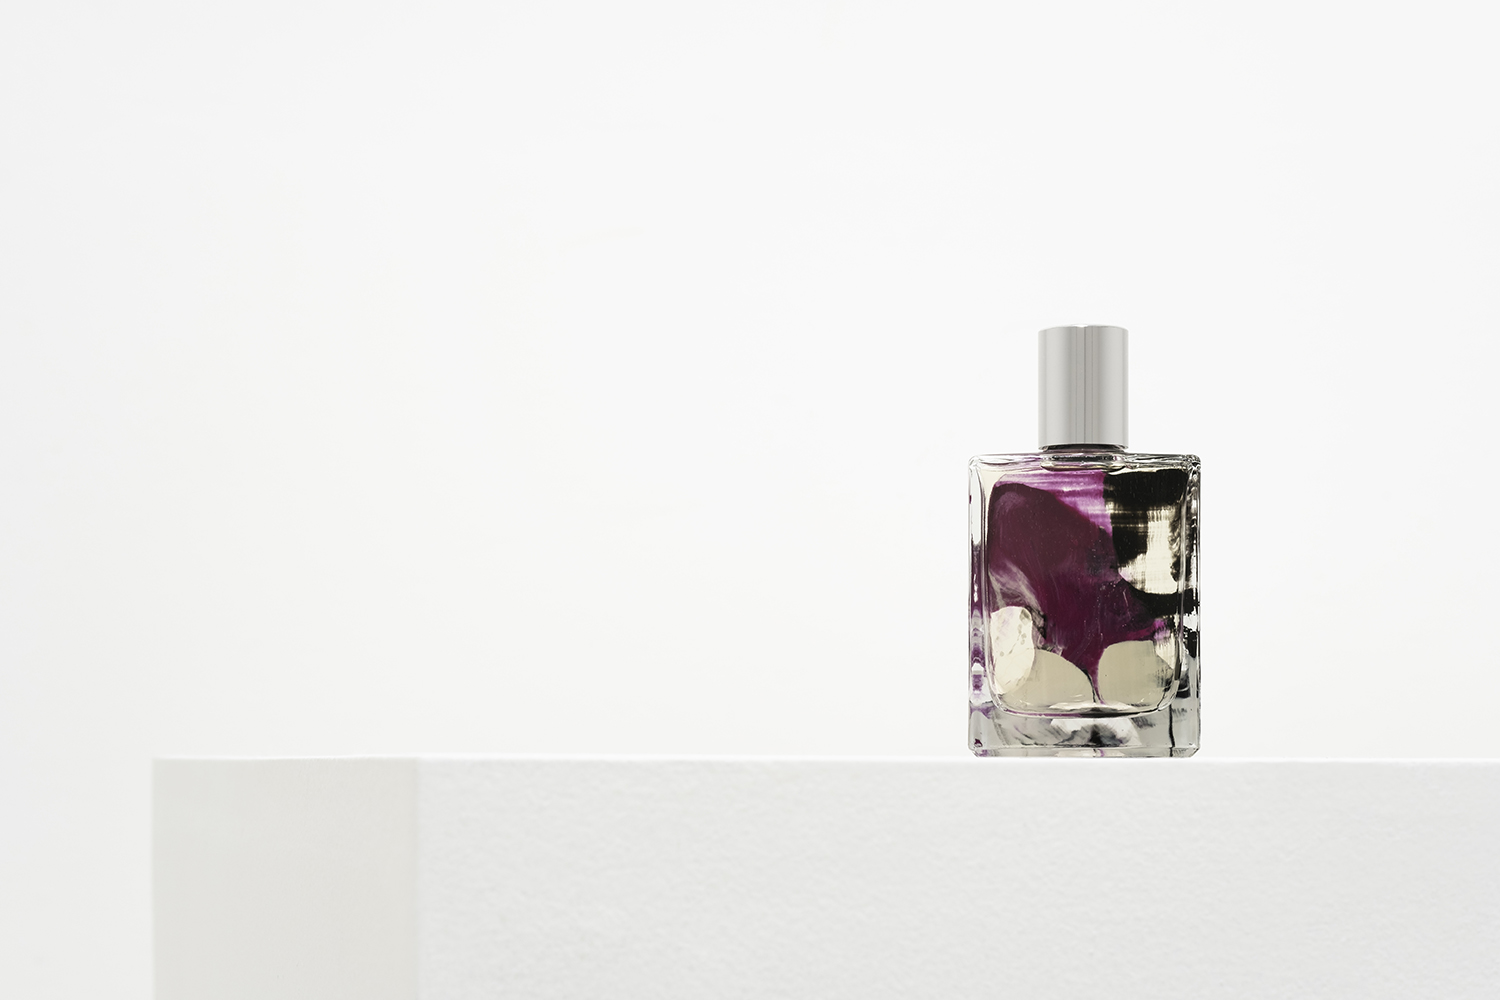 WOMEN ON THE VERGE OF A NERVOUS BREAKDOWN Fragrance By Folie A Plusieurs and Mark Buxton Le Cinema Olfactif Film Series